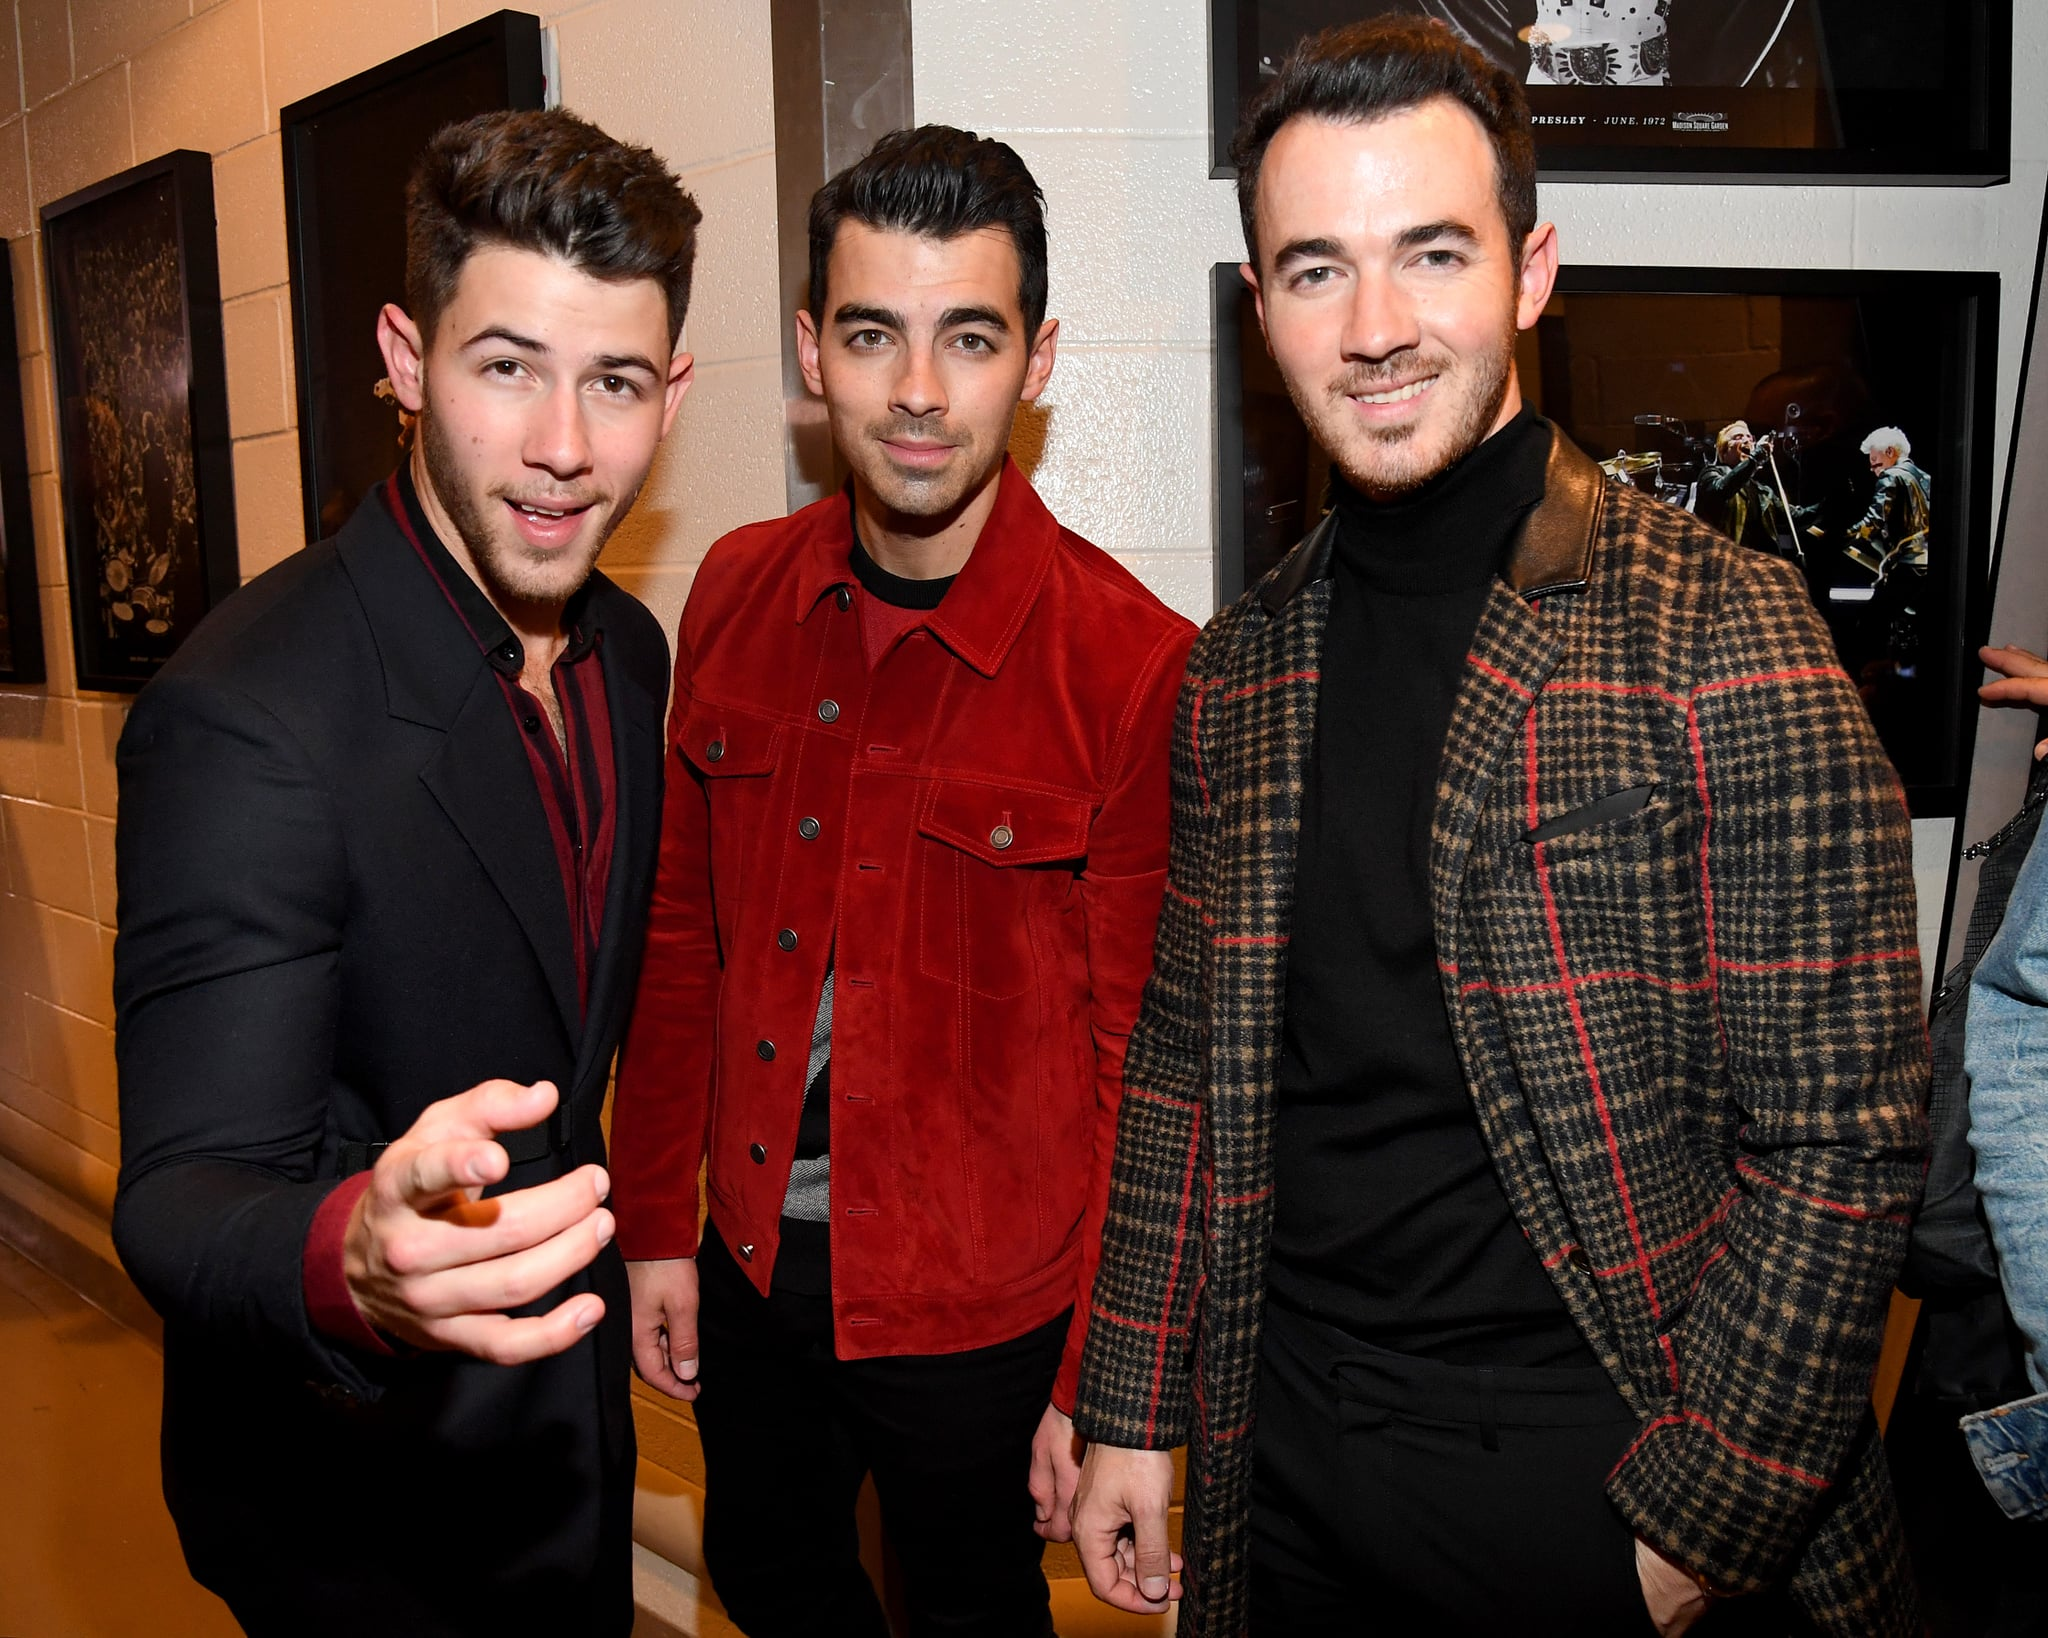 NEW YORK, NEW YORK - DECEMBER 13: Nick Jonas, Joe Jonas, and Kevin Jonas backstage at iHeartRadio's Z100 Jingle Ball 2019 Presented By Capital One on December 13, 2019 in New York City. (Photo by Kevin Mazur/Getty Images for iHeartMedia)